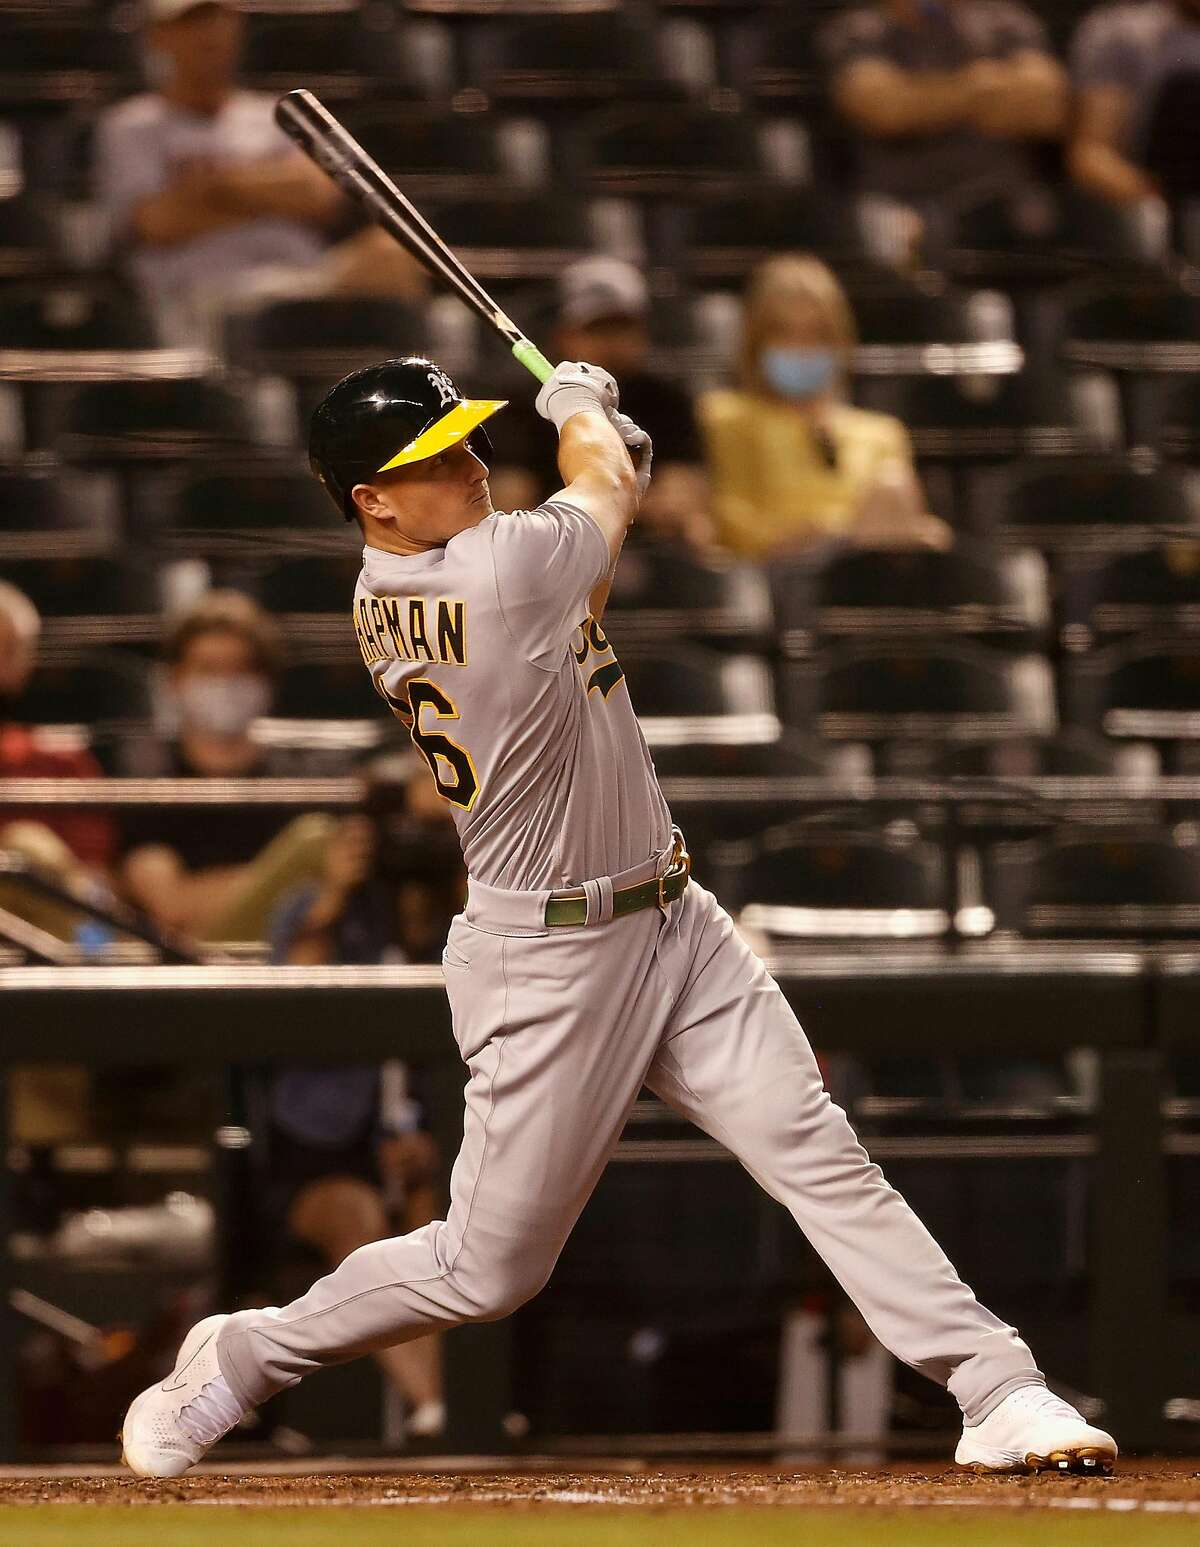 PHOENIX, ARIZONA - APRIL 12: Matt Chapman #26 of the Oakland Athletics hits a solo home run against the Arizona Diamondbacks during the fifth inning of the MLB game at Chase Field on April 12, 2021 in Phoenix, Arizona. (Photo by Christian Petersen/Getty Images)